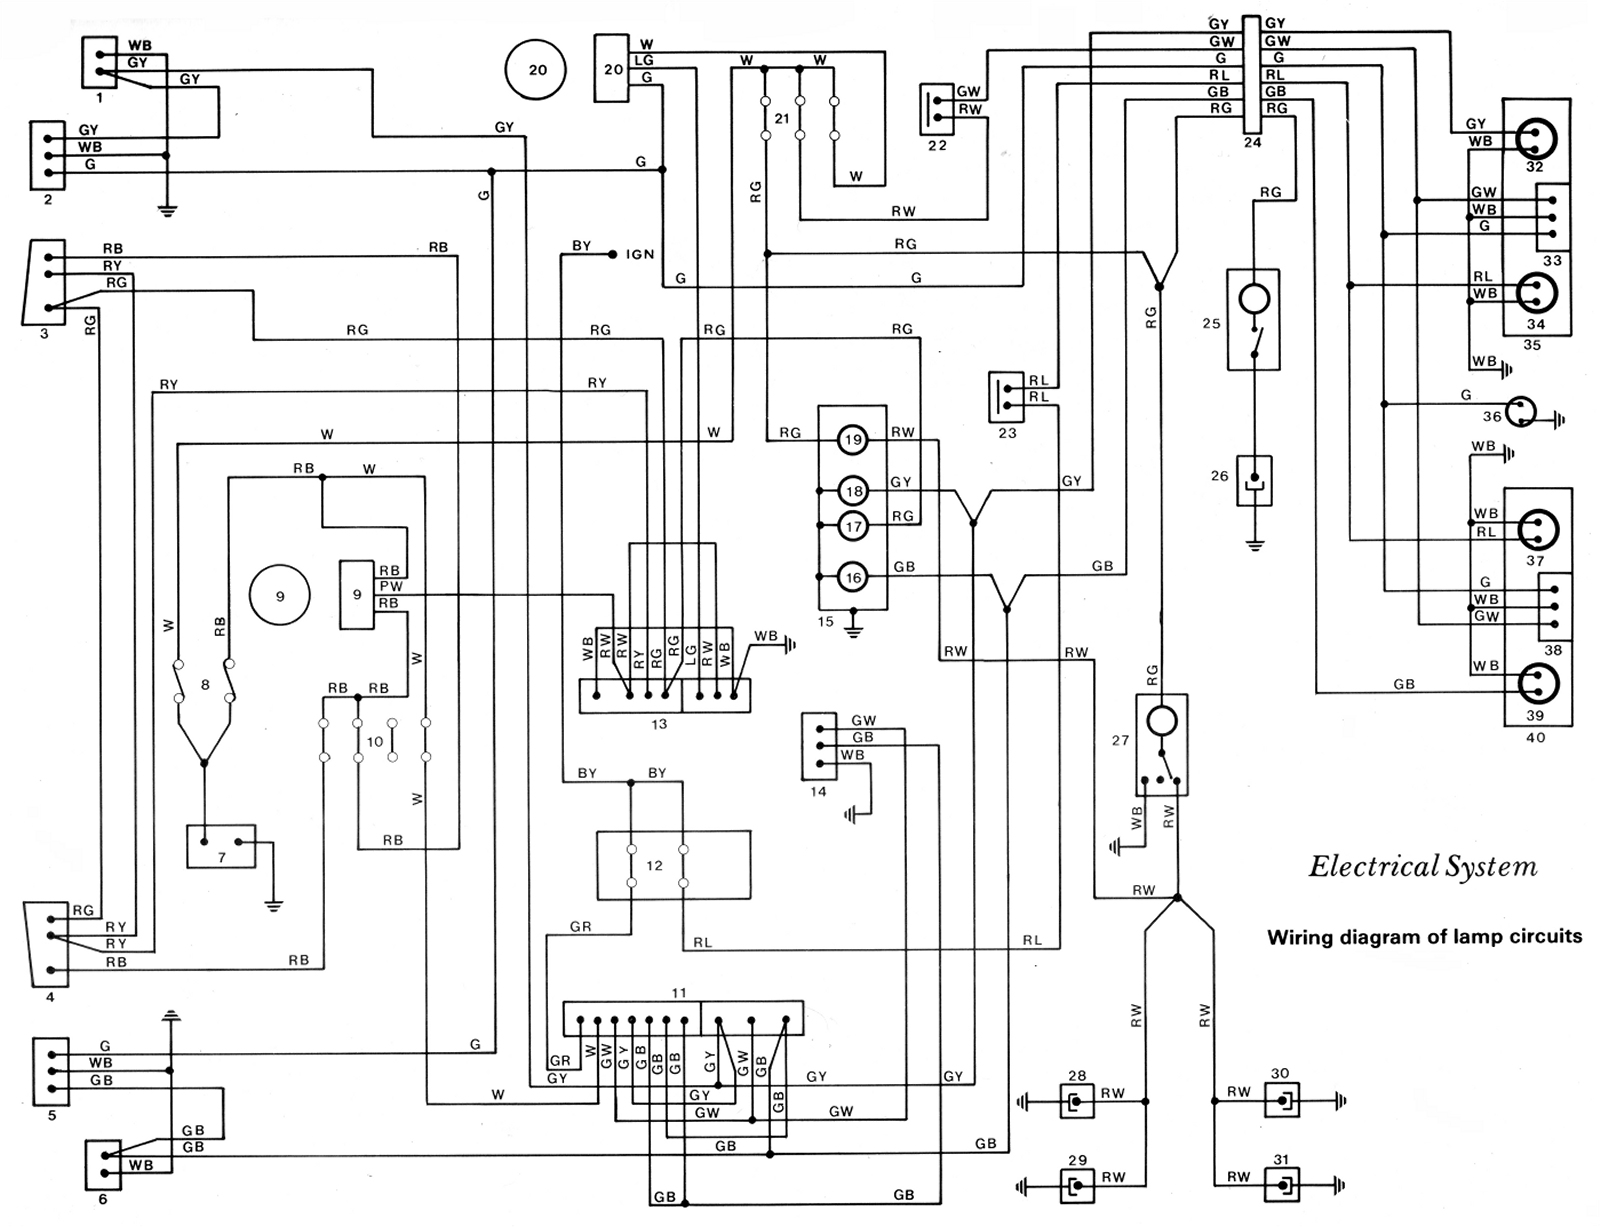 toyota camry ignition wire harness connectors file ke70 wiring diagram lamp circuit schematic jpg  file ke70 wiring diagram lamp circuit schematic jpg